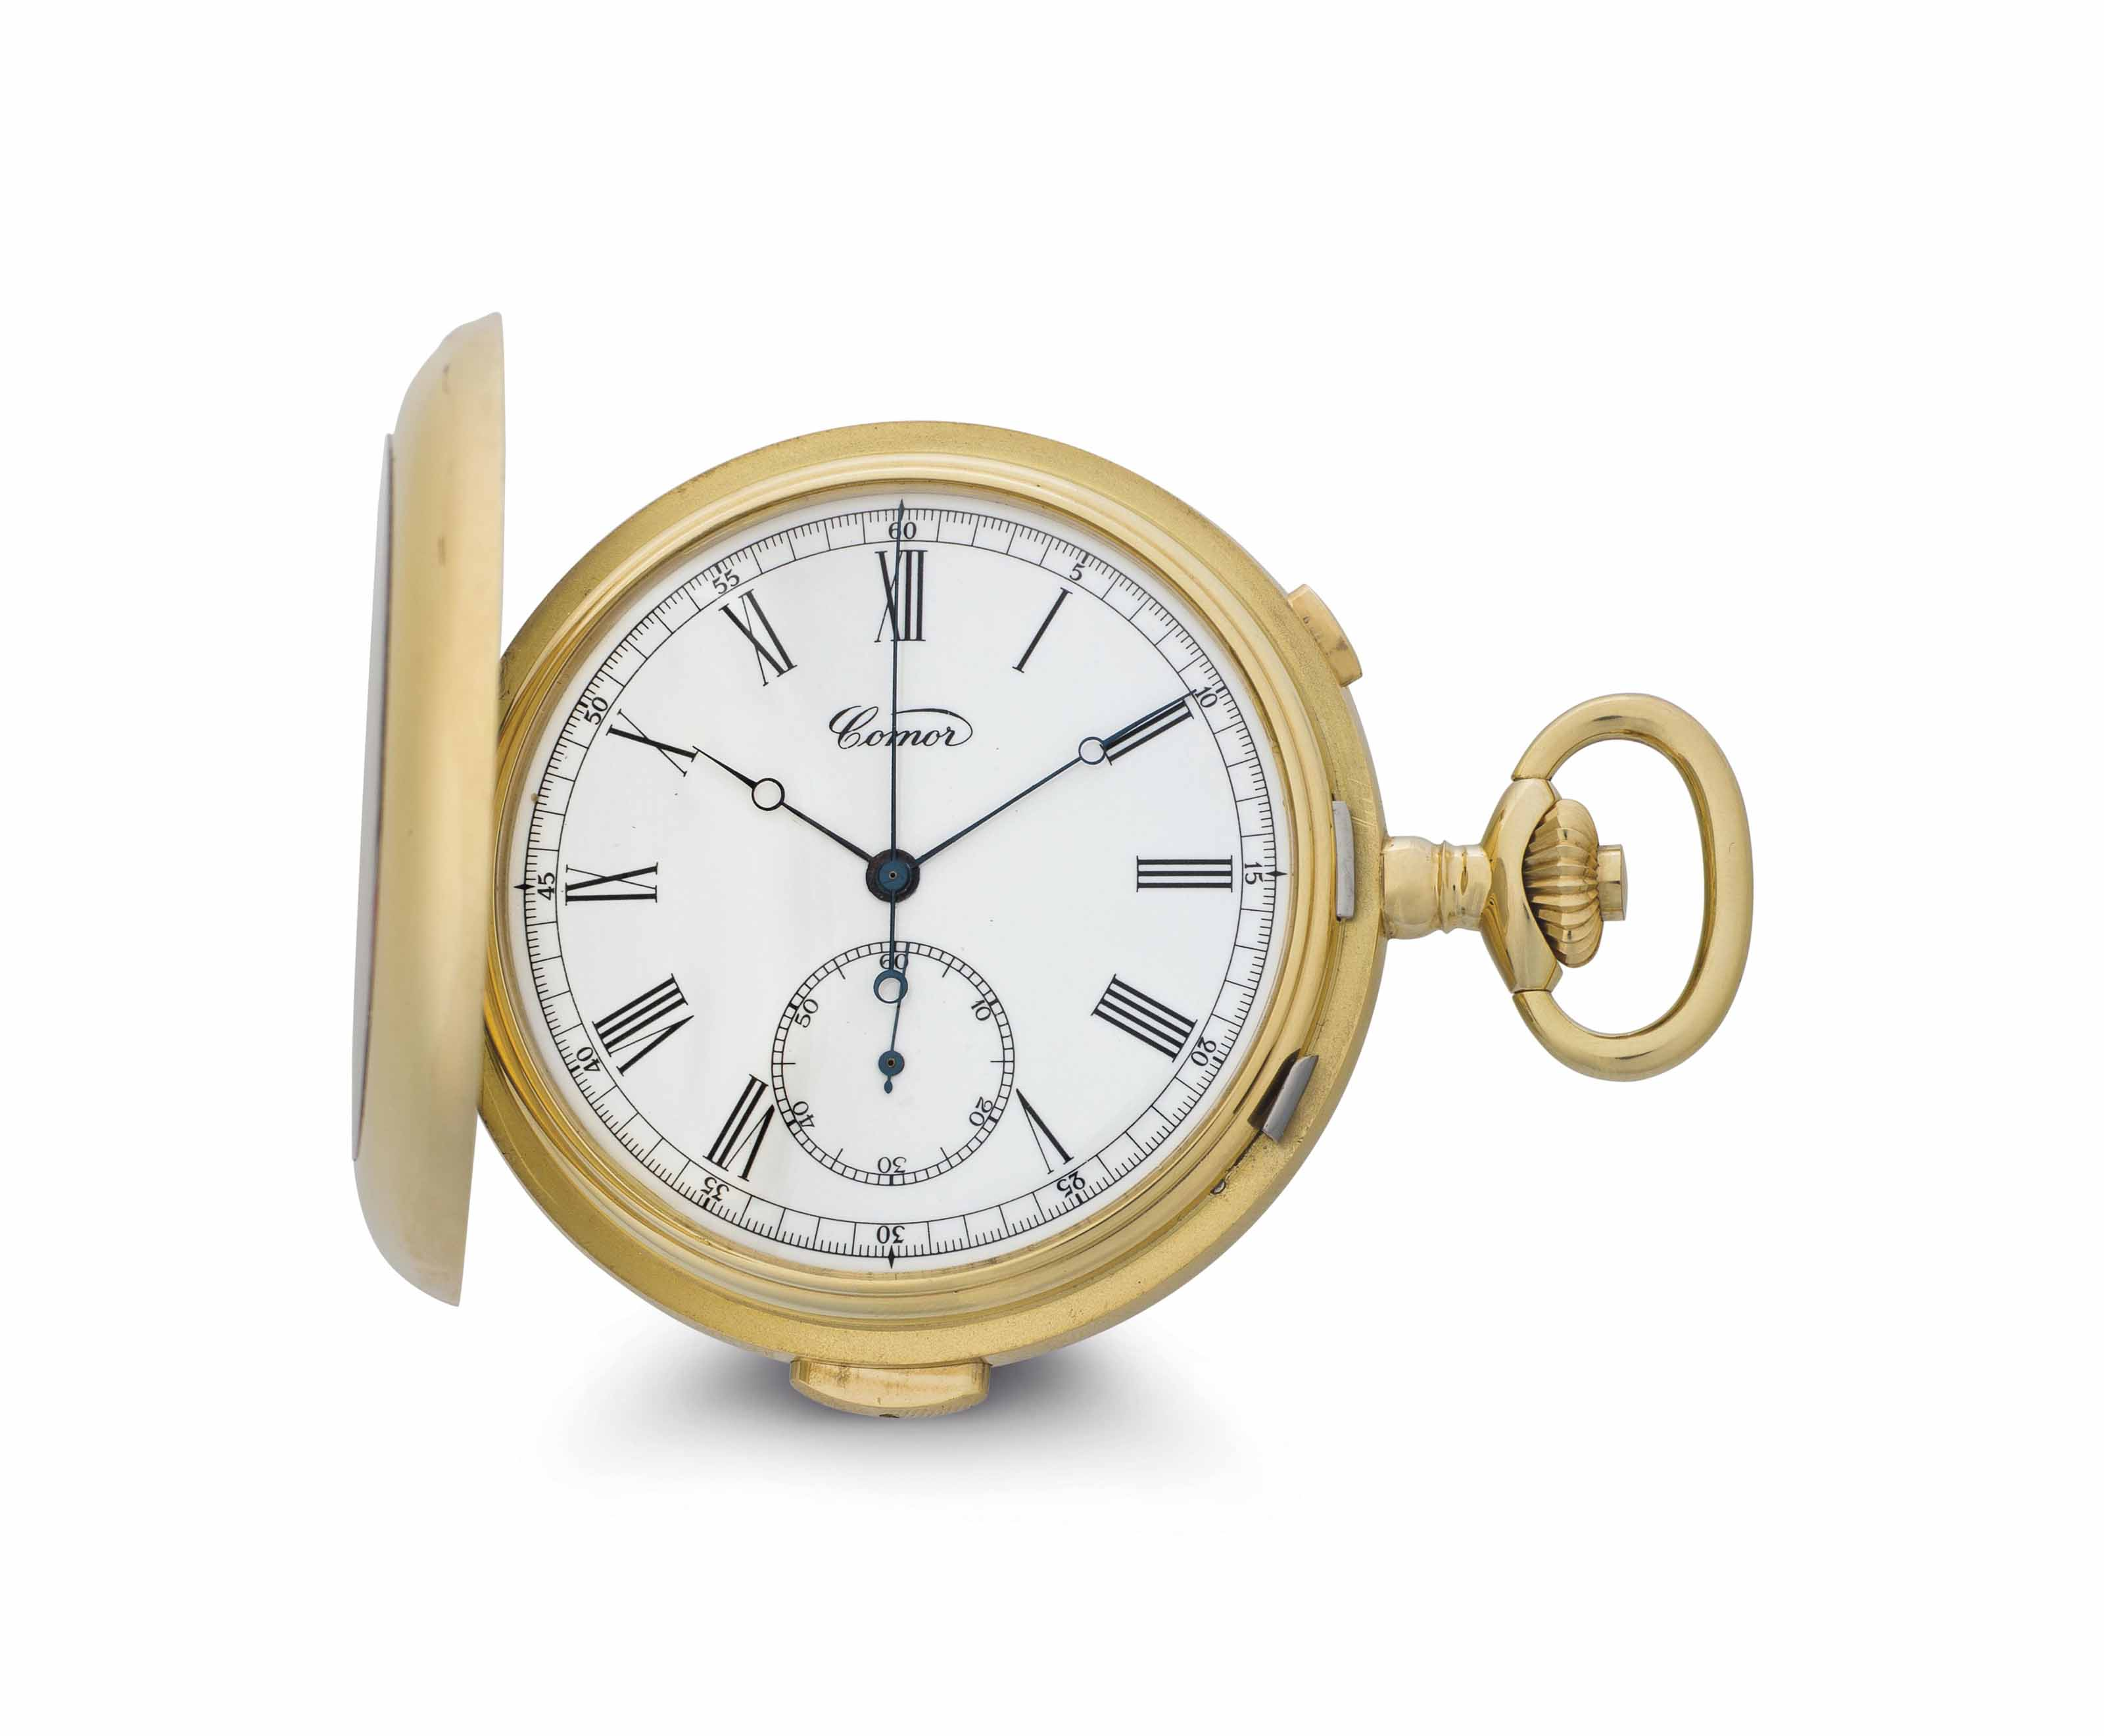 Comor. An 18k Gold Minute Repeating Hunter Case Chronograph Pocket Watch